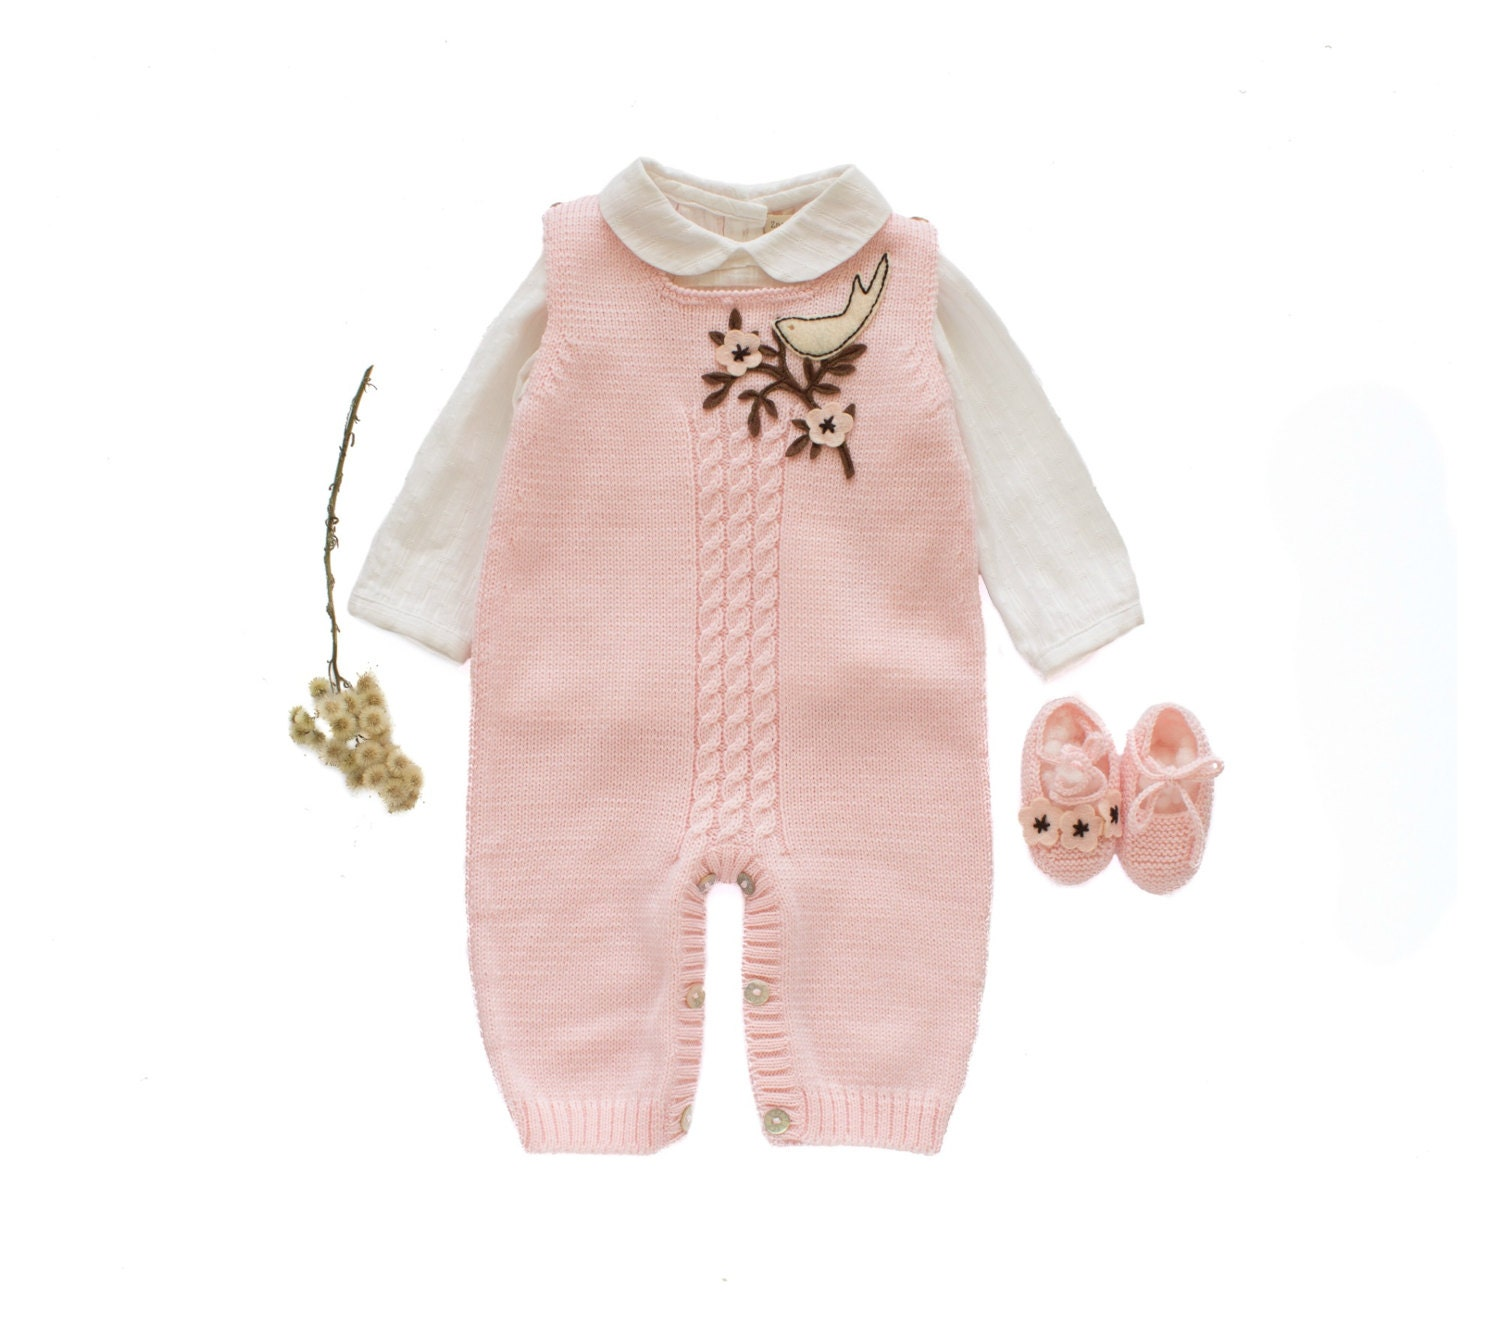 knit baby overalls knitted baby romper knitted baby set. Black Bedroom Furniture Sets. Home Design Ideas